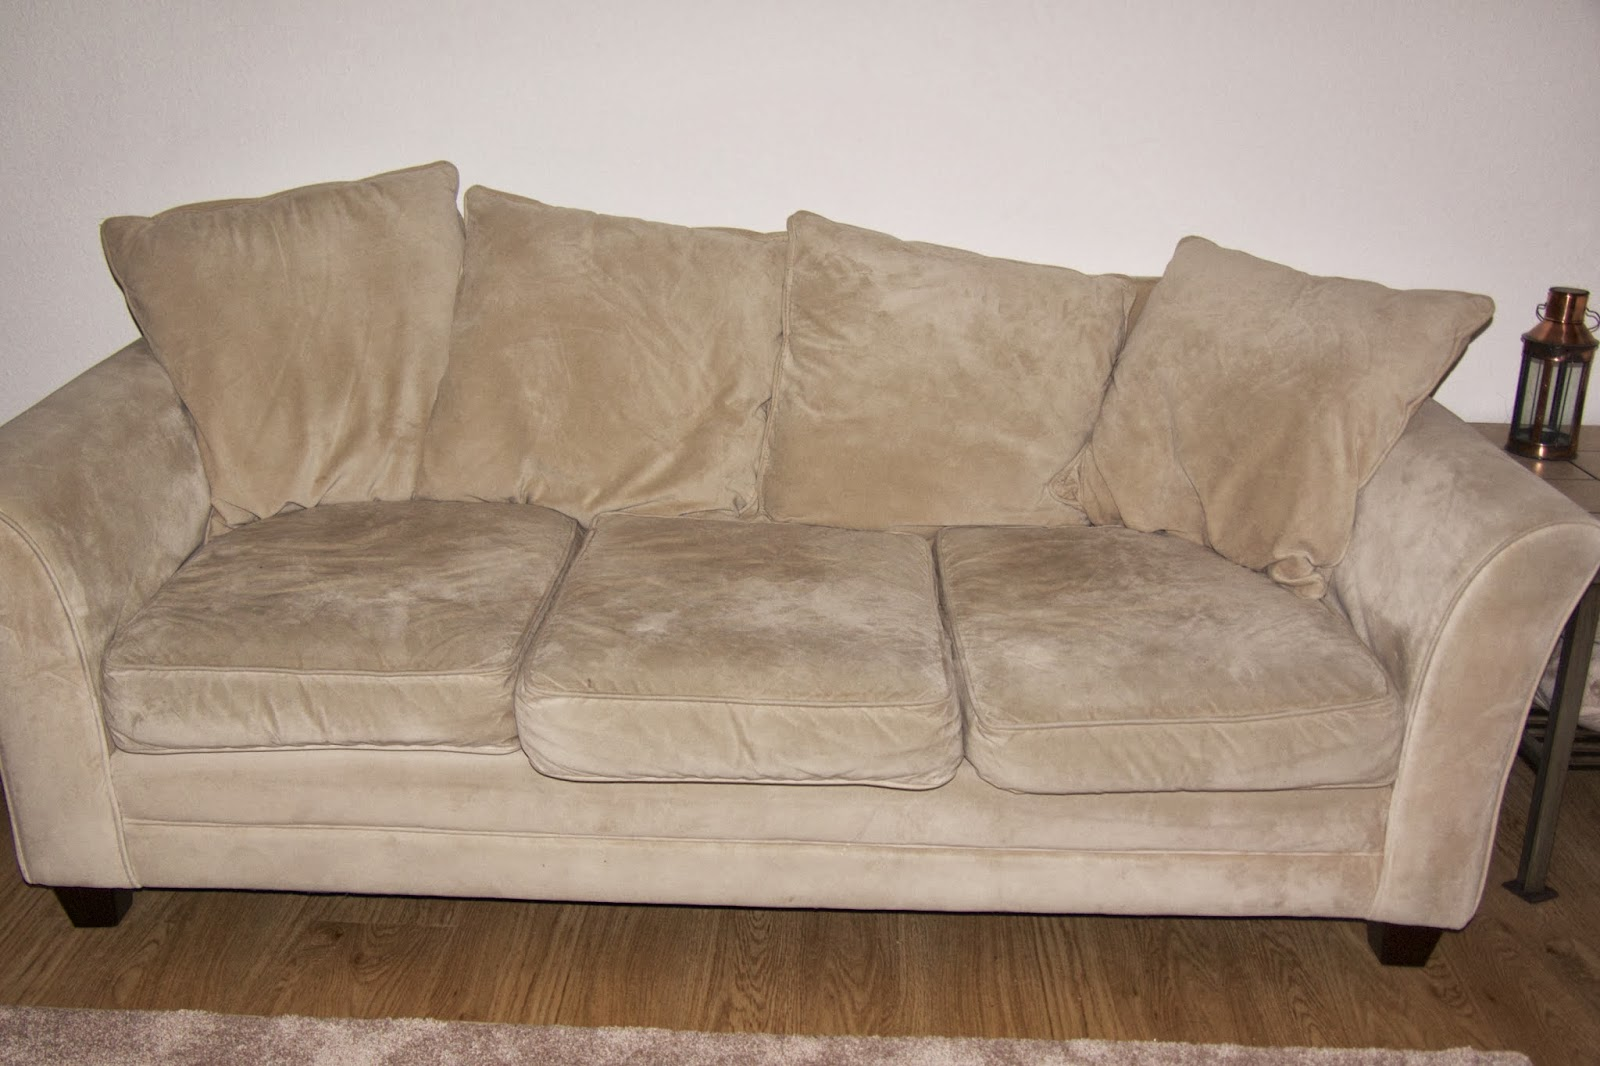 pinterest tested how to clean a microfiber couch